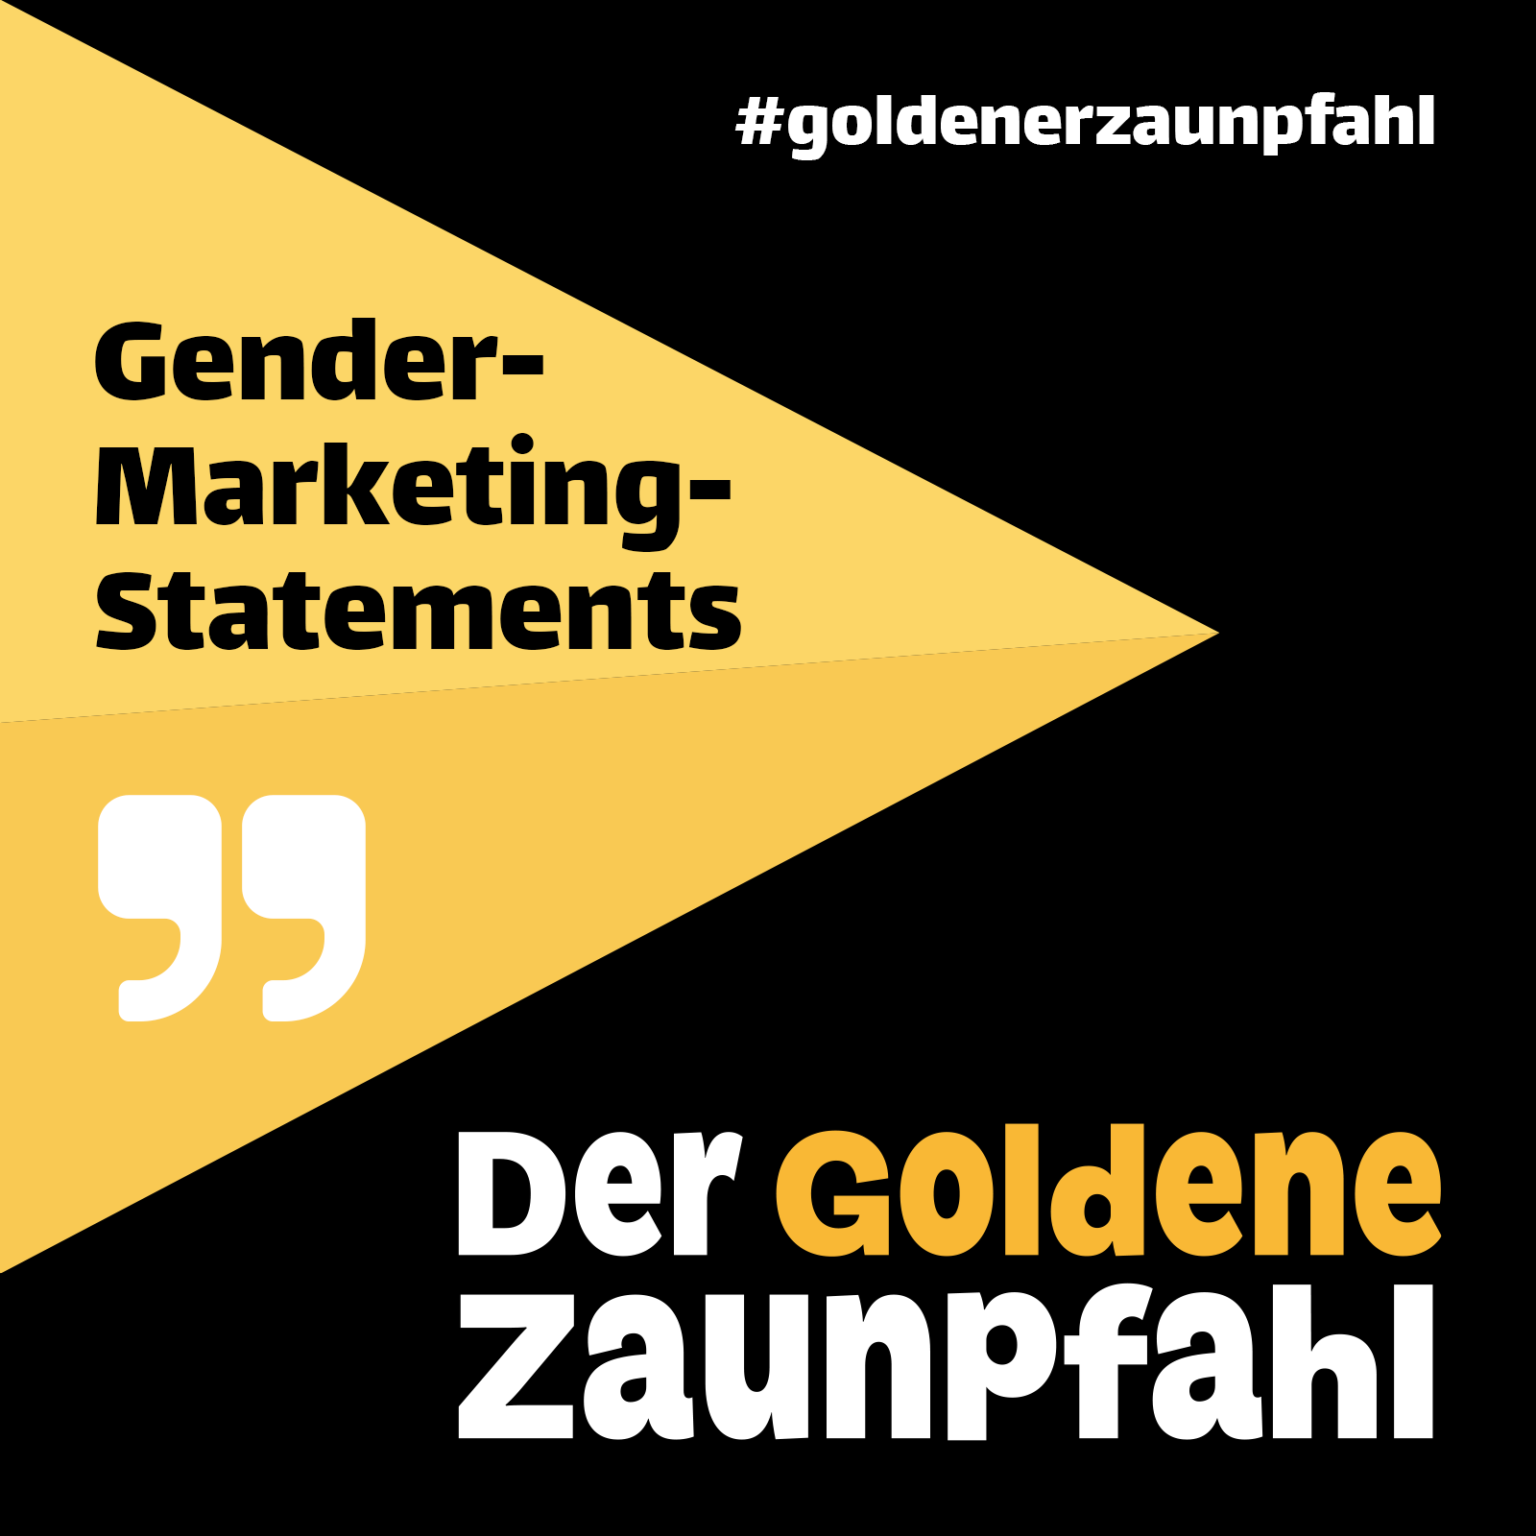 Gender-Marketing-Statements